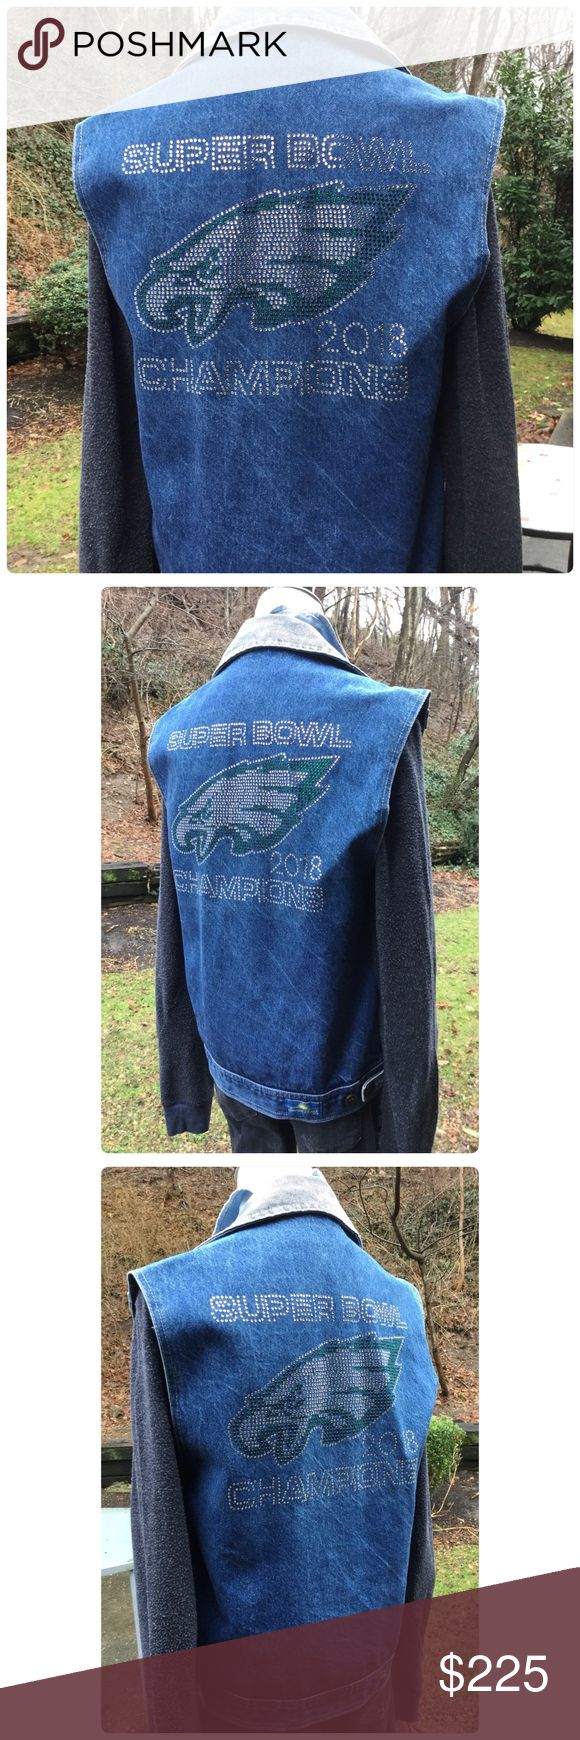 "Super Bowl Champions Eagles VTG Denim Vest Fly Eagles Fly 🦅💕 this is an amazing vintage vest made even more amazing with a 2018 Eagles Super Bowl Champion encrusted in Rhinestone on the back. Two huge front pockets, button down, some expected vintage character wear, 3 eagles pins included, approx measurements 19"" pit to pit, 23"" long, will fit size small to medium depending on what you wear underneath and how you like a fit. One of a kind, amazing heirloom, made with love. DezChic Tops"